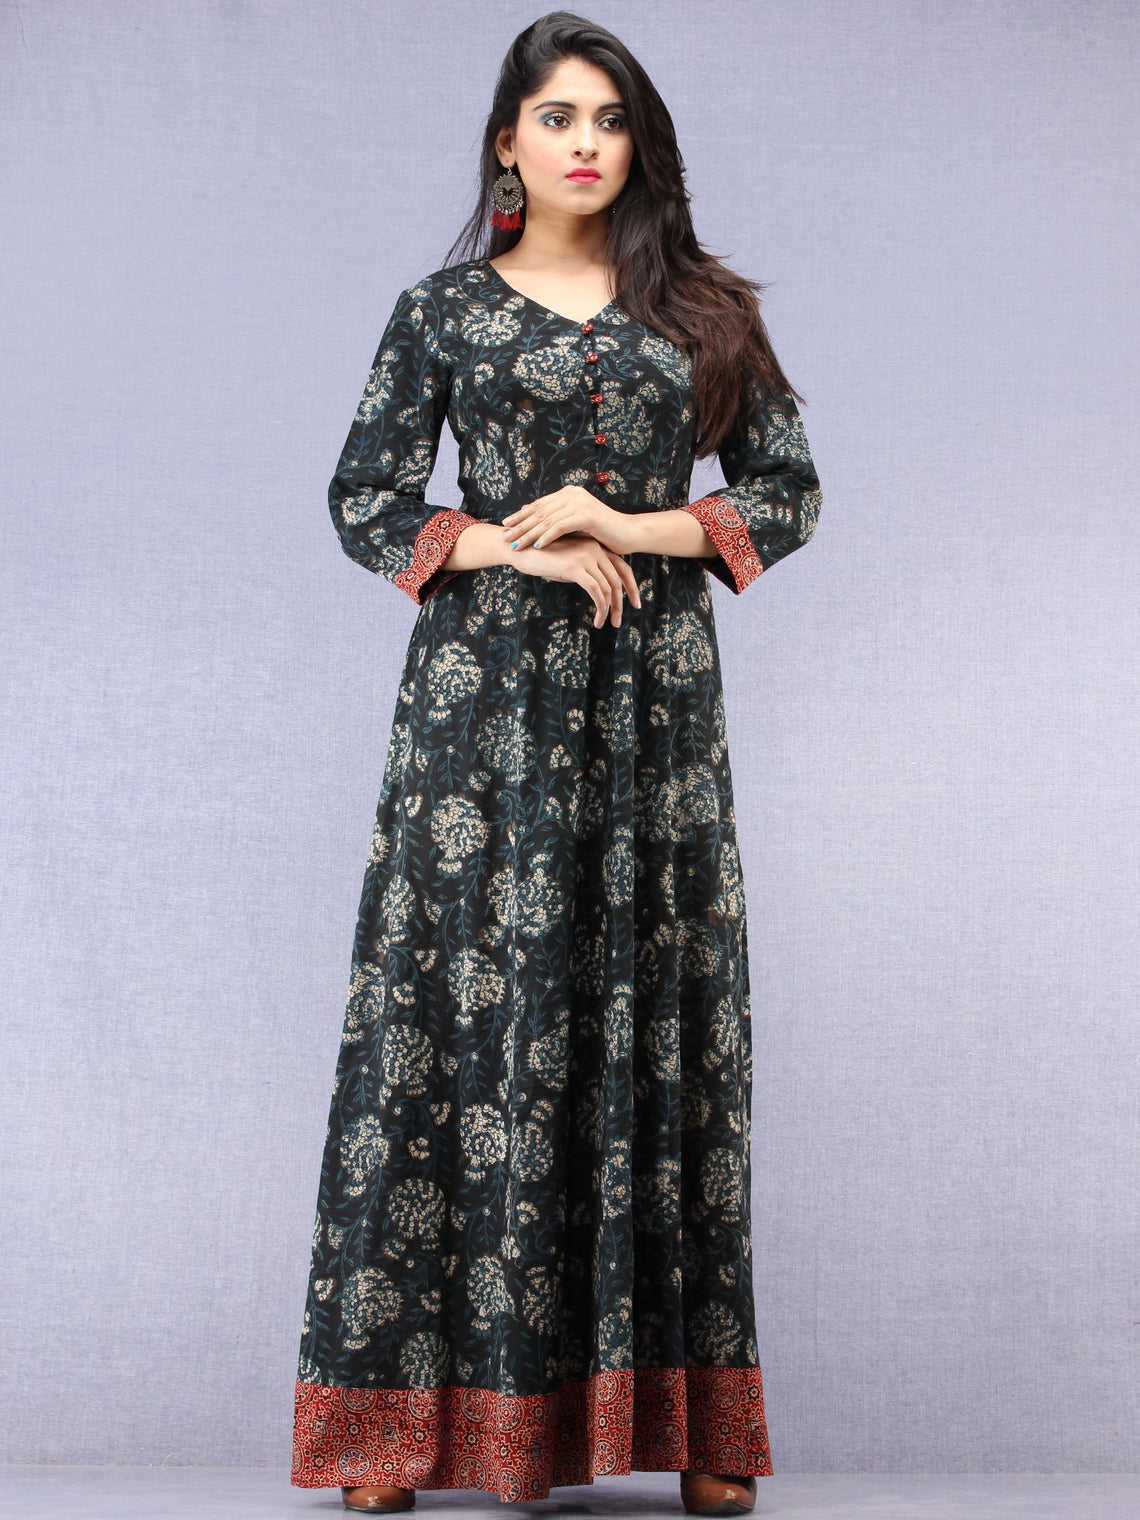 5f9e68d6ec ... Nazmin - Hand Block Printed Long Cotton Dress With Back Knots -  D162F1823 ...